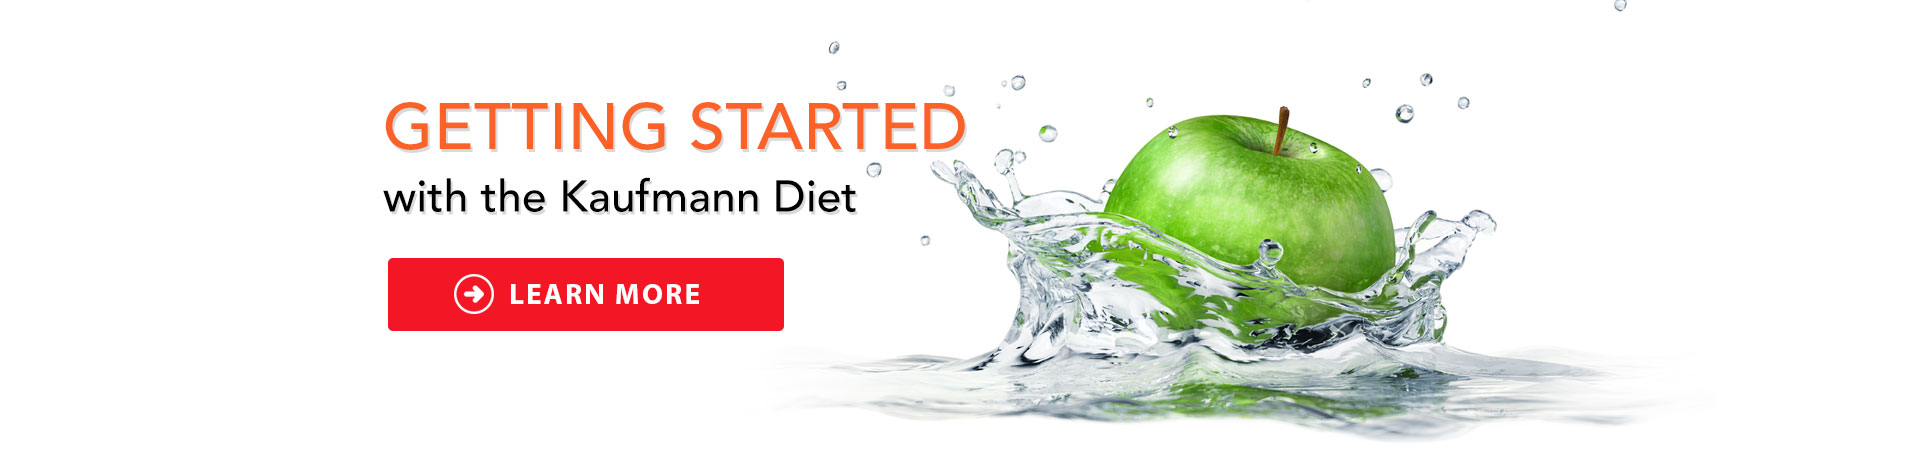 Getting Started with the Kaufmann Diet